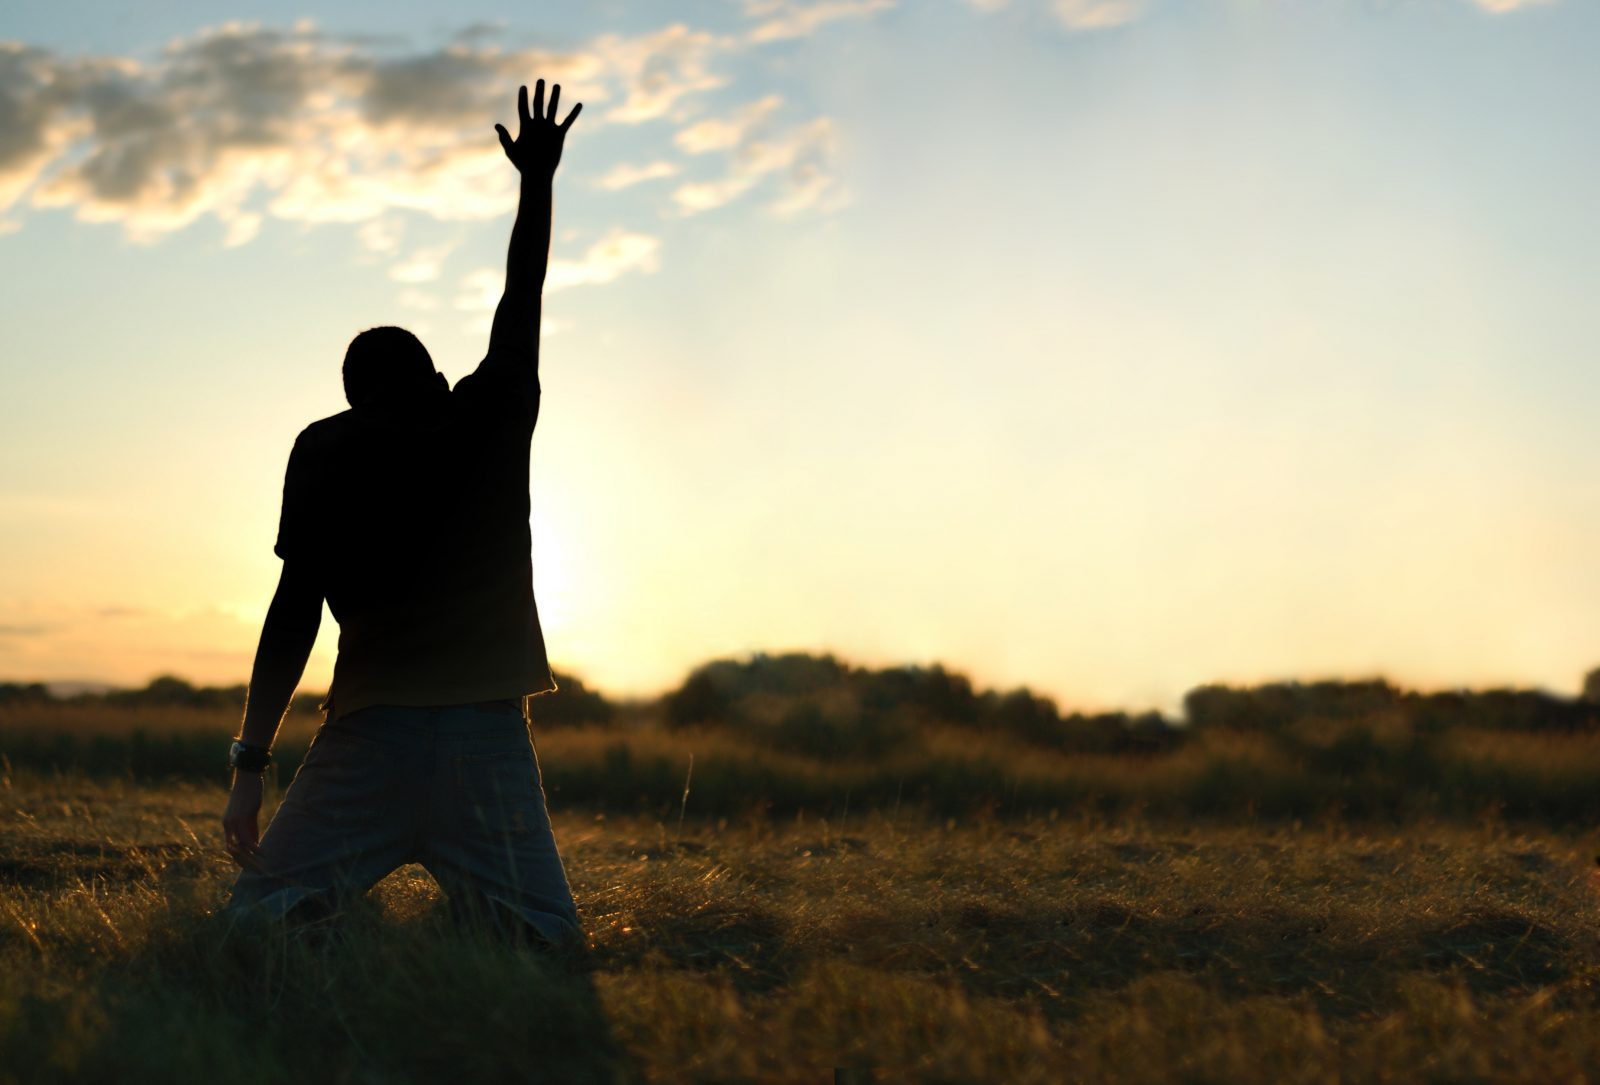 Young man on his knees reaching up to heaven with an outstretched arm.